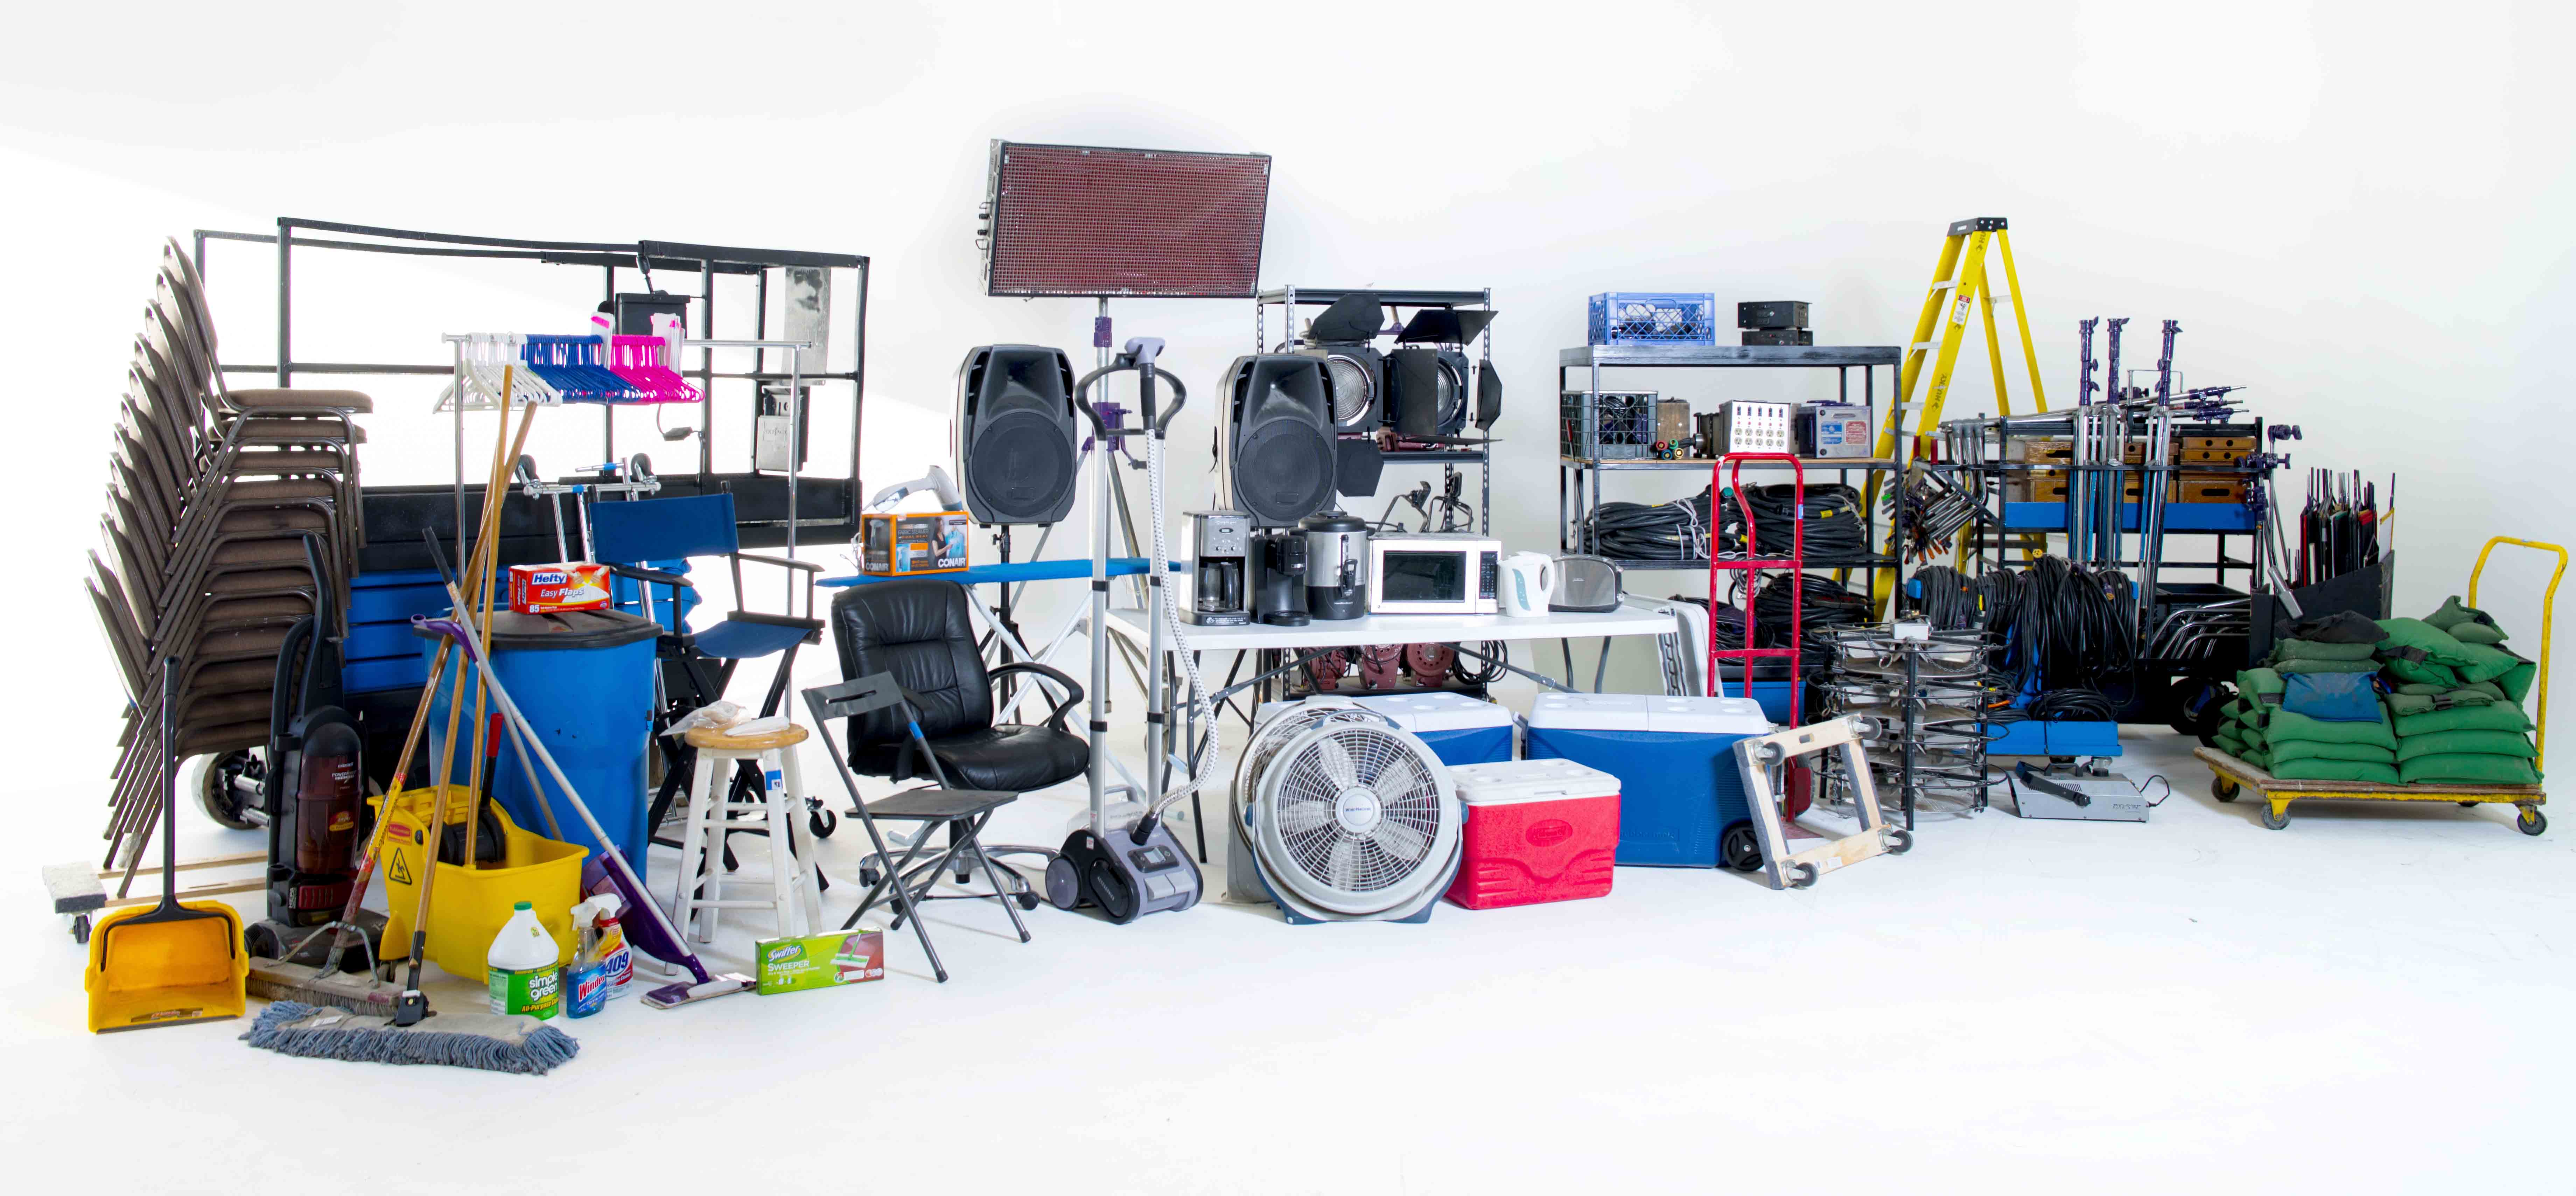 EQUIPMENT BY DEPT PHOTO UNLABELED.jpg